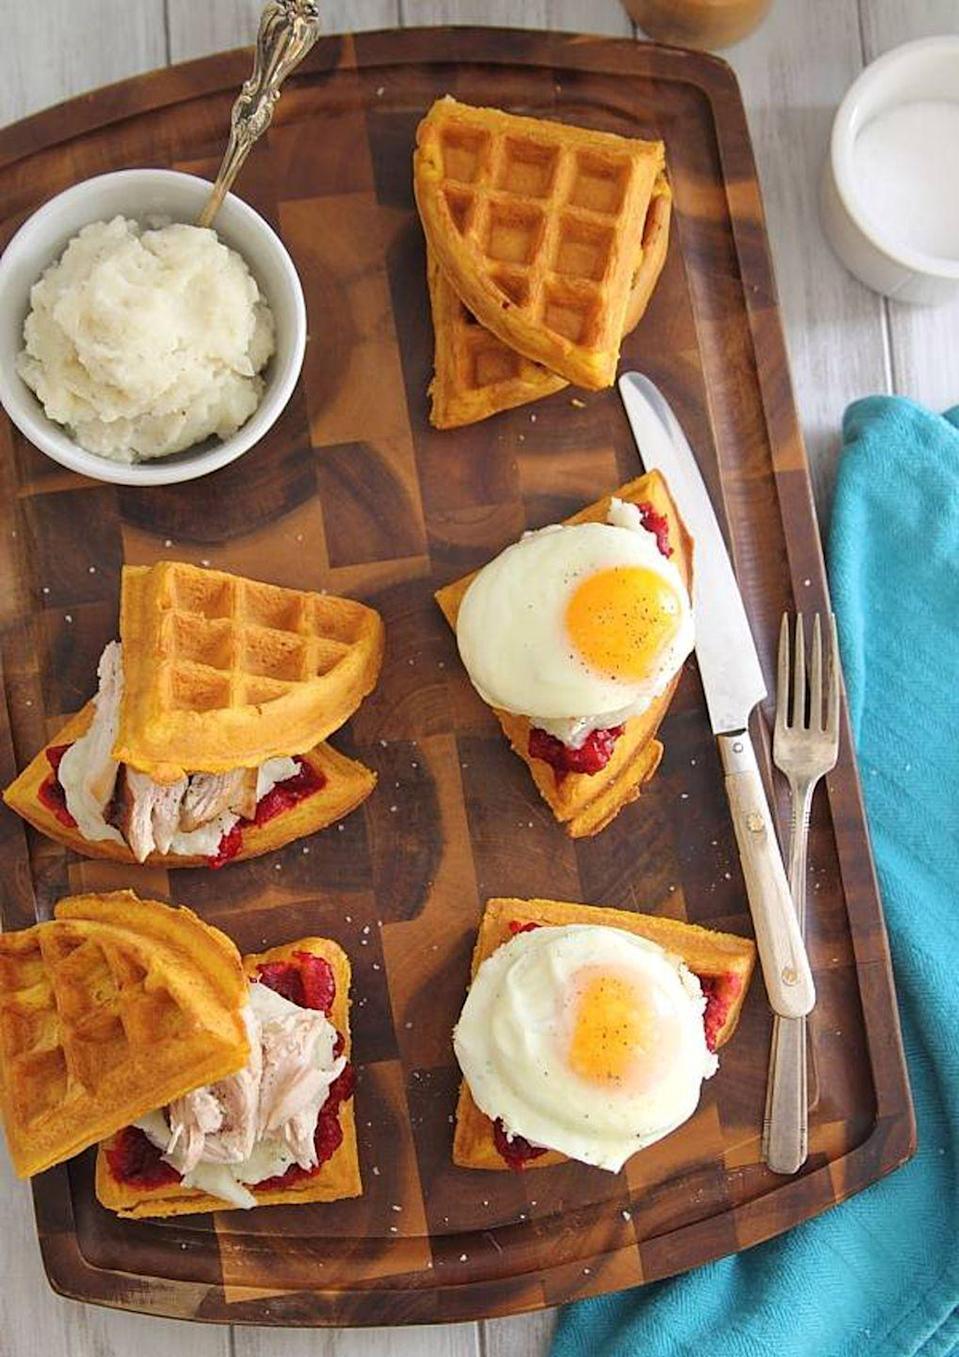 """<p>Pile mashed potatoes, cranberry sauce, turkey, and an over-easy egg on top of pumpkin waffles for an early morning treat that truly captures all the <a href=""""https://www.countryliving.com/food-drinks/g1921/easy-fall-recipes/"""" rel=""""nofollow noopener"""" target=""""_blank"""" data-ylk=""""slk:best tastes of fall."""" class=""""link rapid-noclick-resp"""">best tastes of fall.</a><br></p><p><strong>Get the recipe at <a href=""""https://www.runningtothekitchen.com/thanksgiving-leftover-waffle-breakfast-sandwiches/"""" rel=""""nofollow noopener"""" target=""""_blank"""" data-ylk=""""slk:Running to the Kitchen"""" class=""""link rapid-noclick-resp"""">Running to the Kitchen</a>.</strong></p><p><a class=""""link rapid-noclick-resp"""" href=""""https://www.amazon.com/Presto-Ceramic-FlipSide-Belgian-Waffle/dp/B000TYBWIG?tag=syn-yahoo-20&ascsubtag=%5Bartid%7C10050.g.2144%5Bsrc%7Cyahoo-us"""" rel=""""nofollow noopener"""" target=""""_blank"""" data-ylk=""""slk:shop waffle makers"""">shop waffle makers</a></p>"""